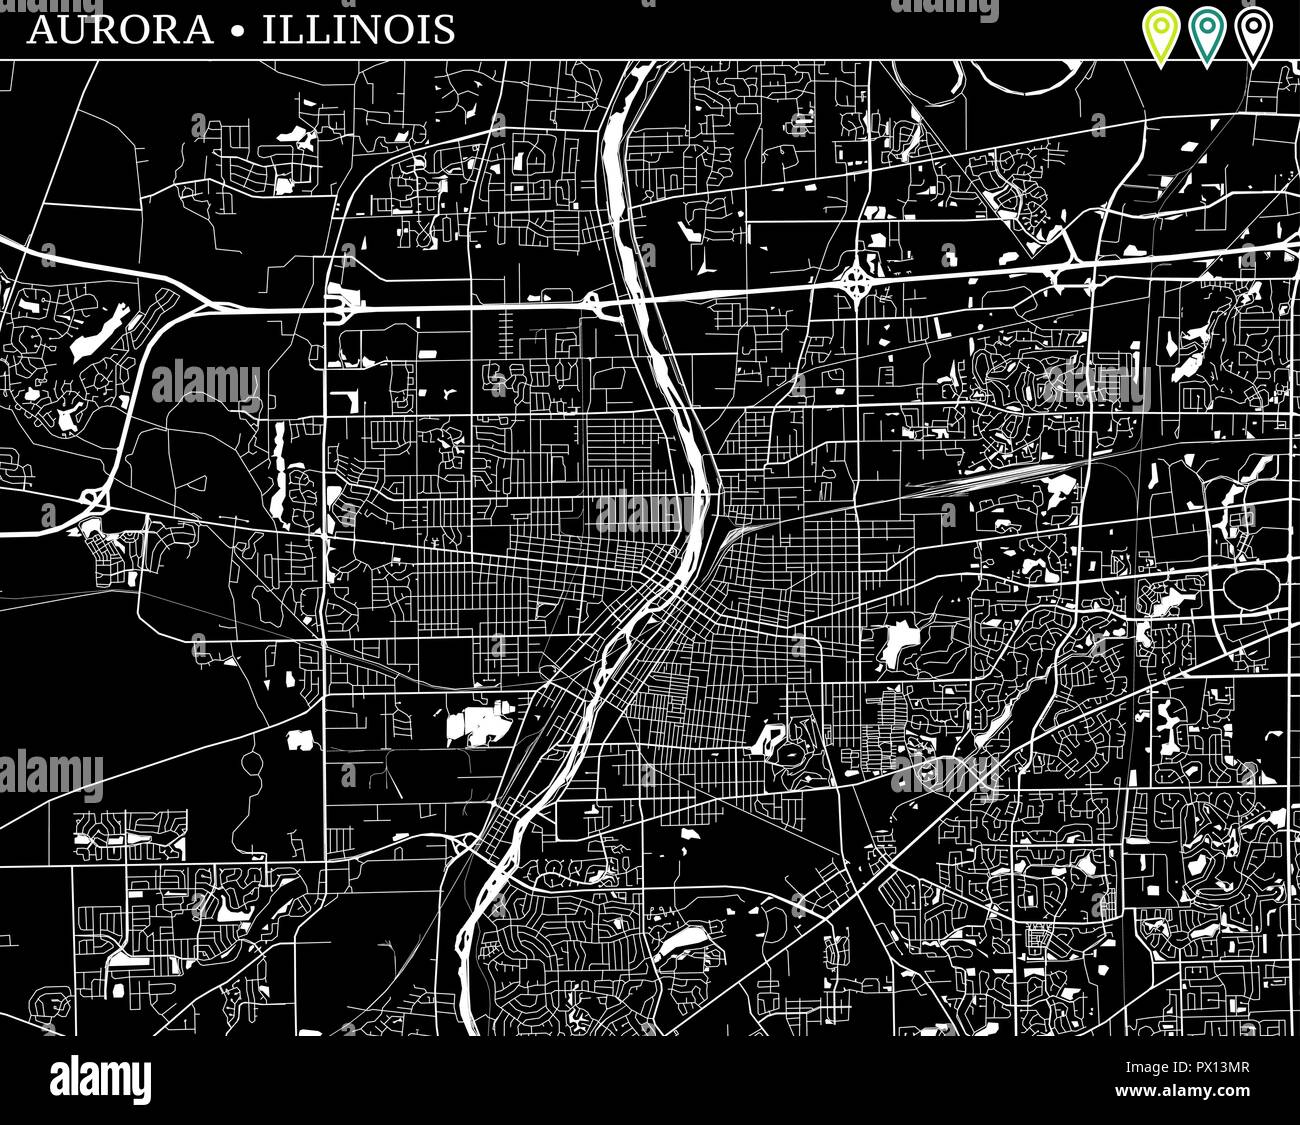 Simple Map Of Aurora Illinois Usa Black And White Version For